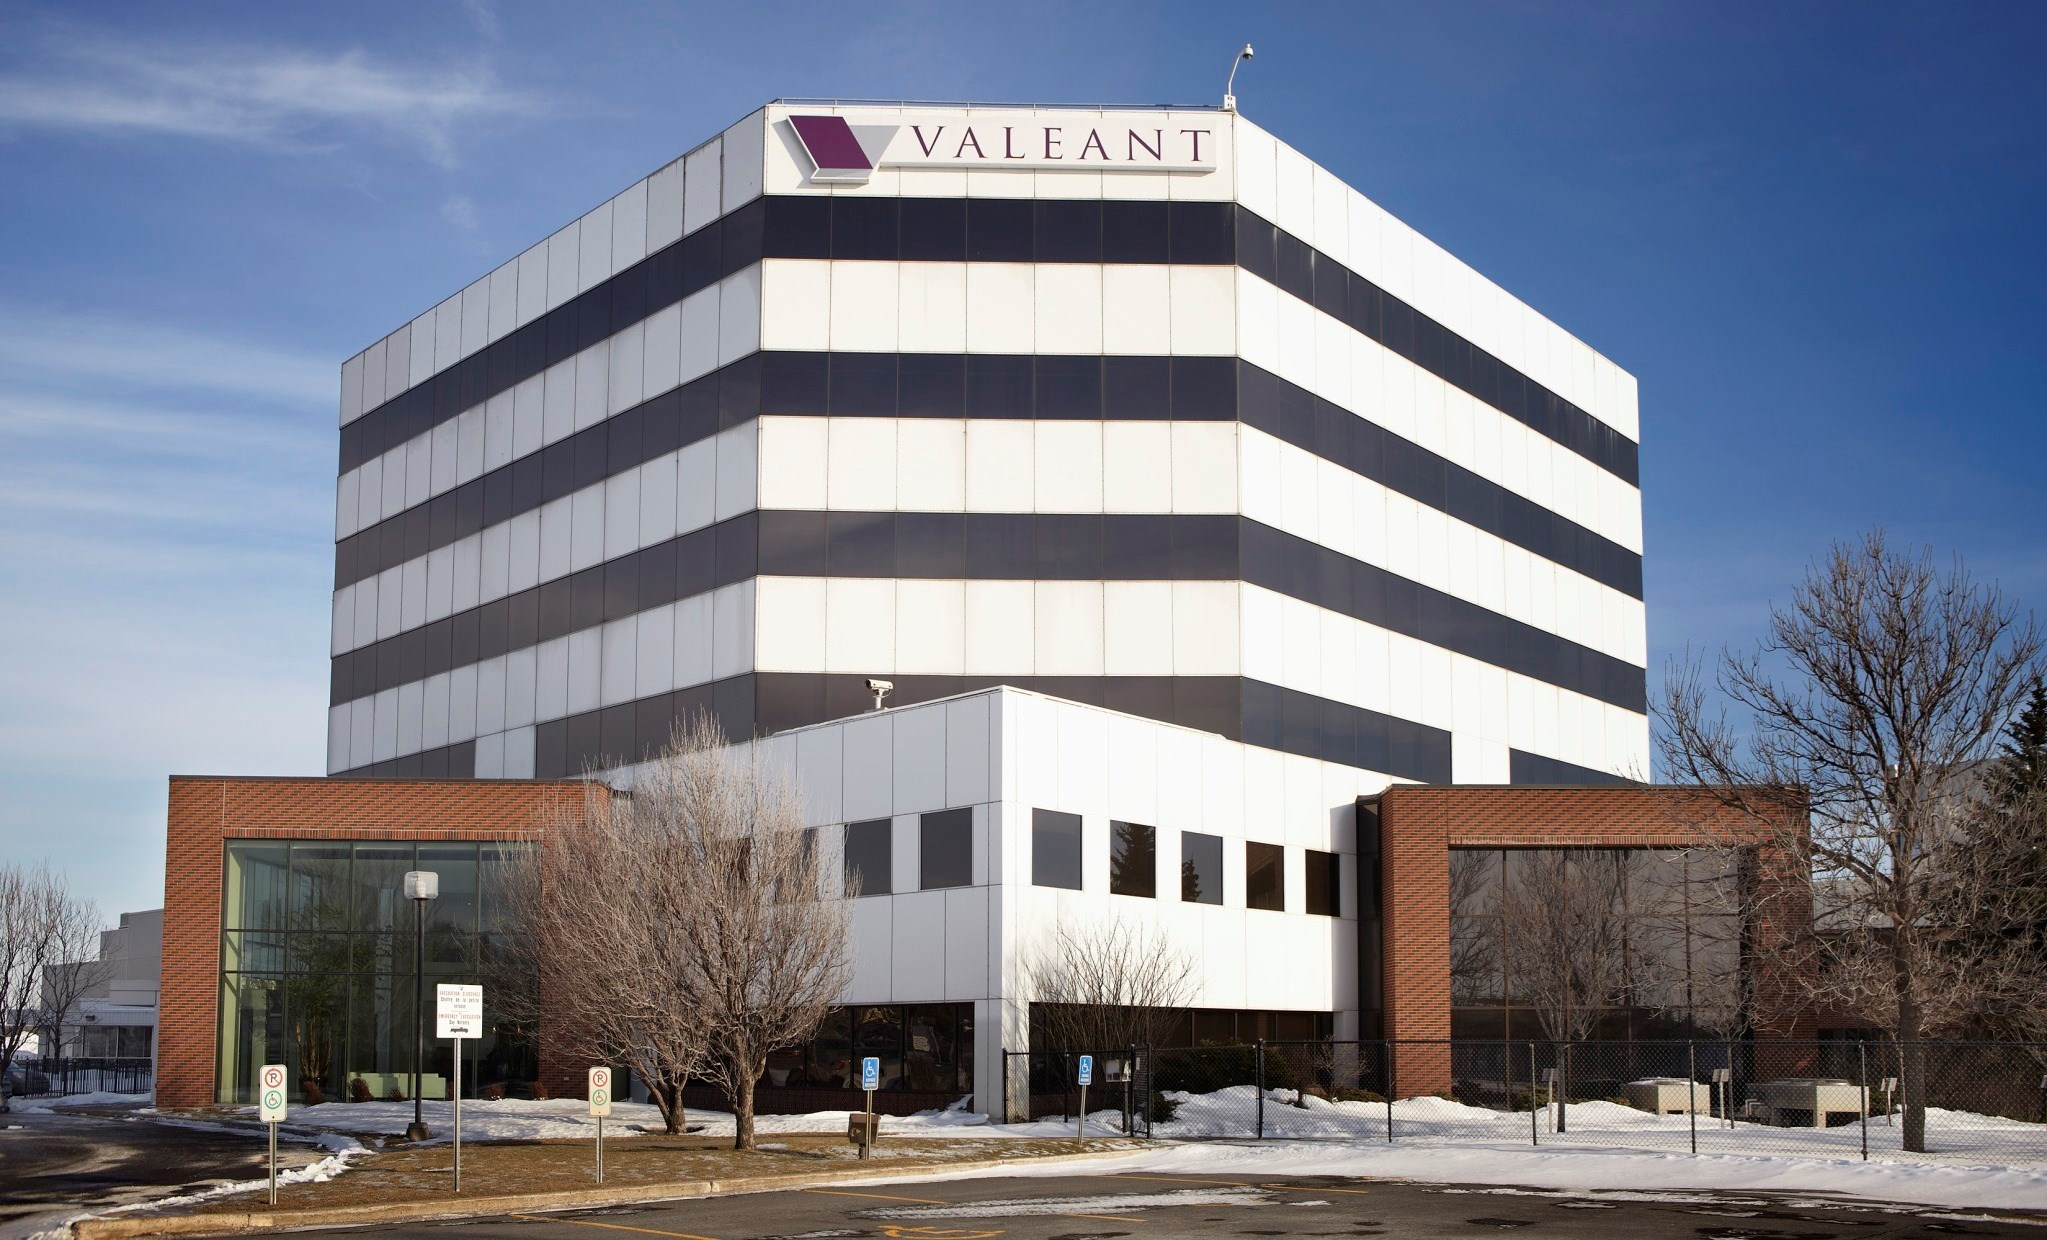 Valeant CEO blames salesforce turnover for disappointing Xifaxan sales